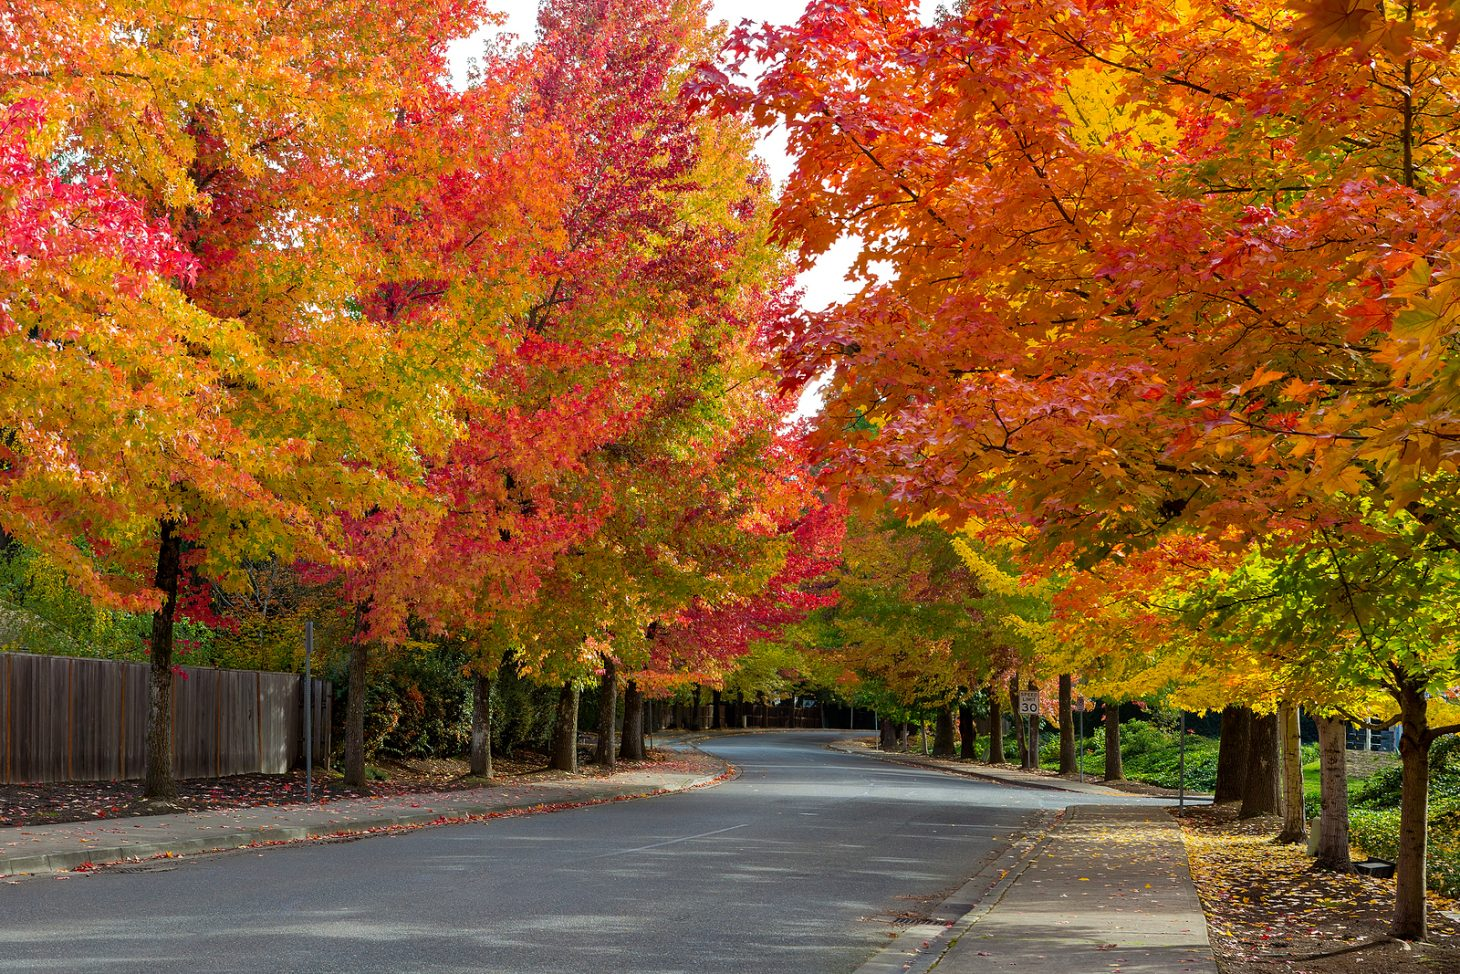 Beautiful streets lined with vibrant fall foliage